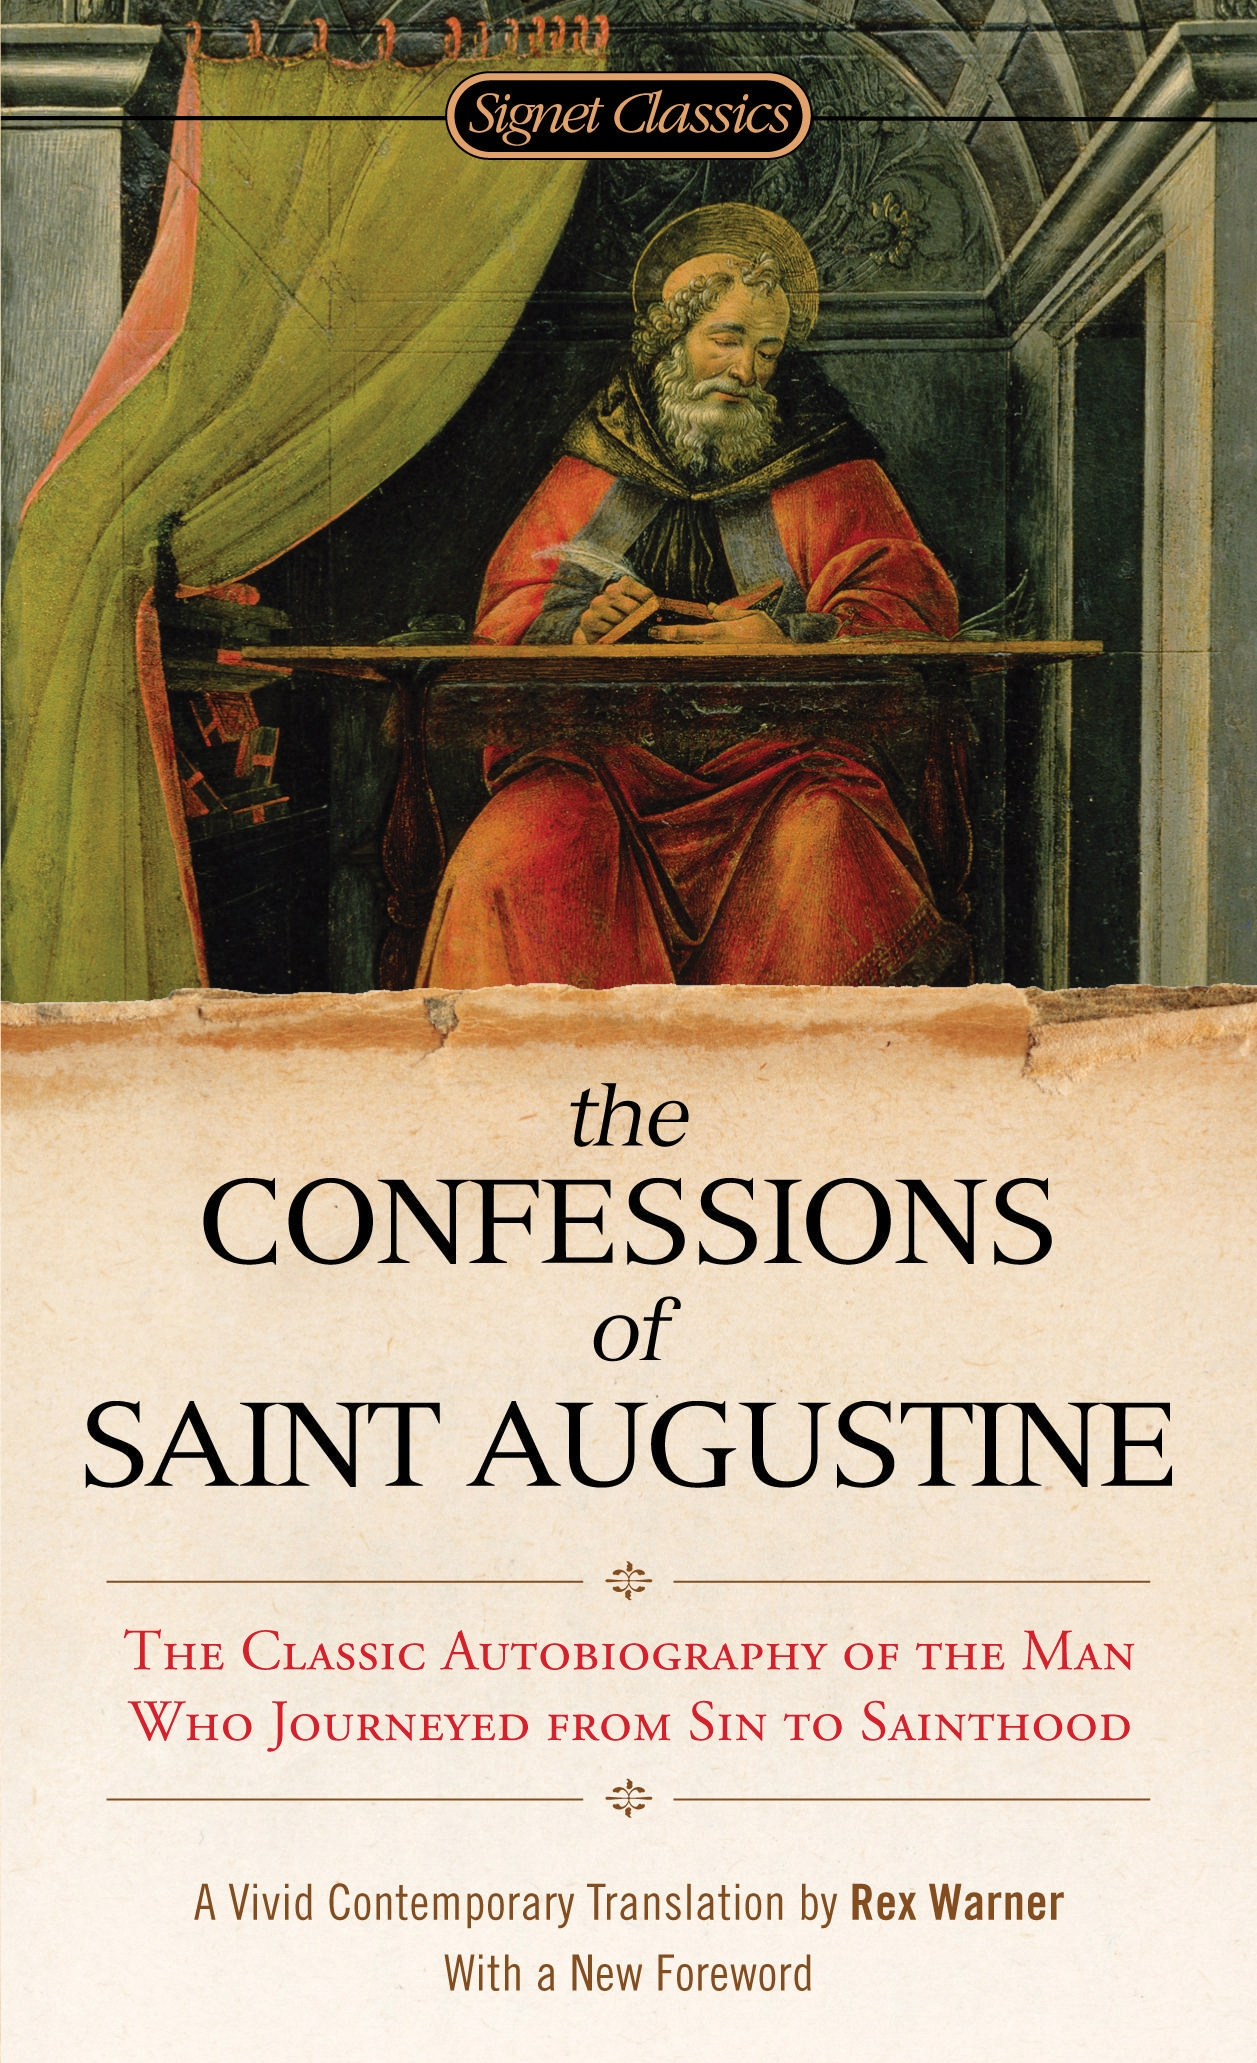 the confessions of st augustine a The confessions: the confessions, spiritual self-examination by saint augustine, written in latin as confessiones about 400 ce the book tells of augustine's restless youth and of the stormy spiritual voyage that had ended some 12 years before the writing in the haven of the roman catholic church.